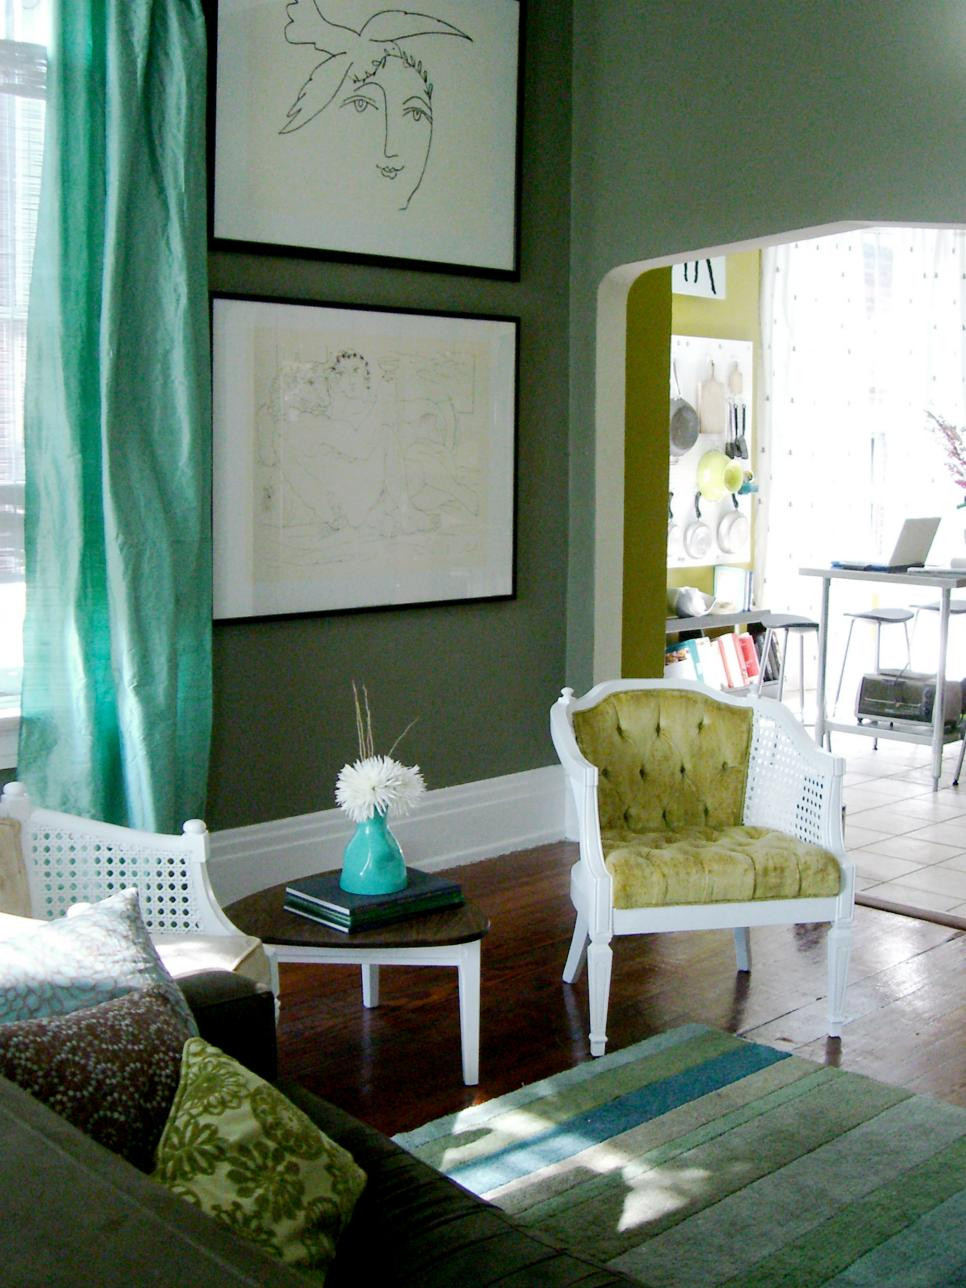 Best ideas about Living Room Paint Ideas . Save or Pin Paint Ideas for Living Room with Narrow Space TheyDesign Now.